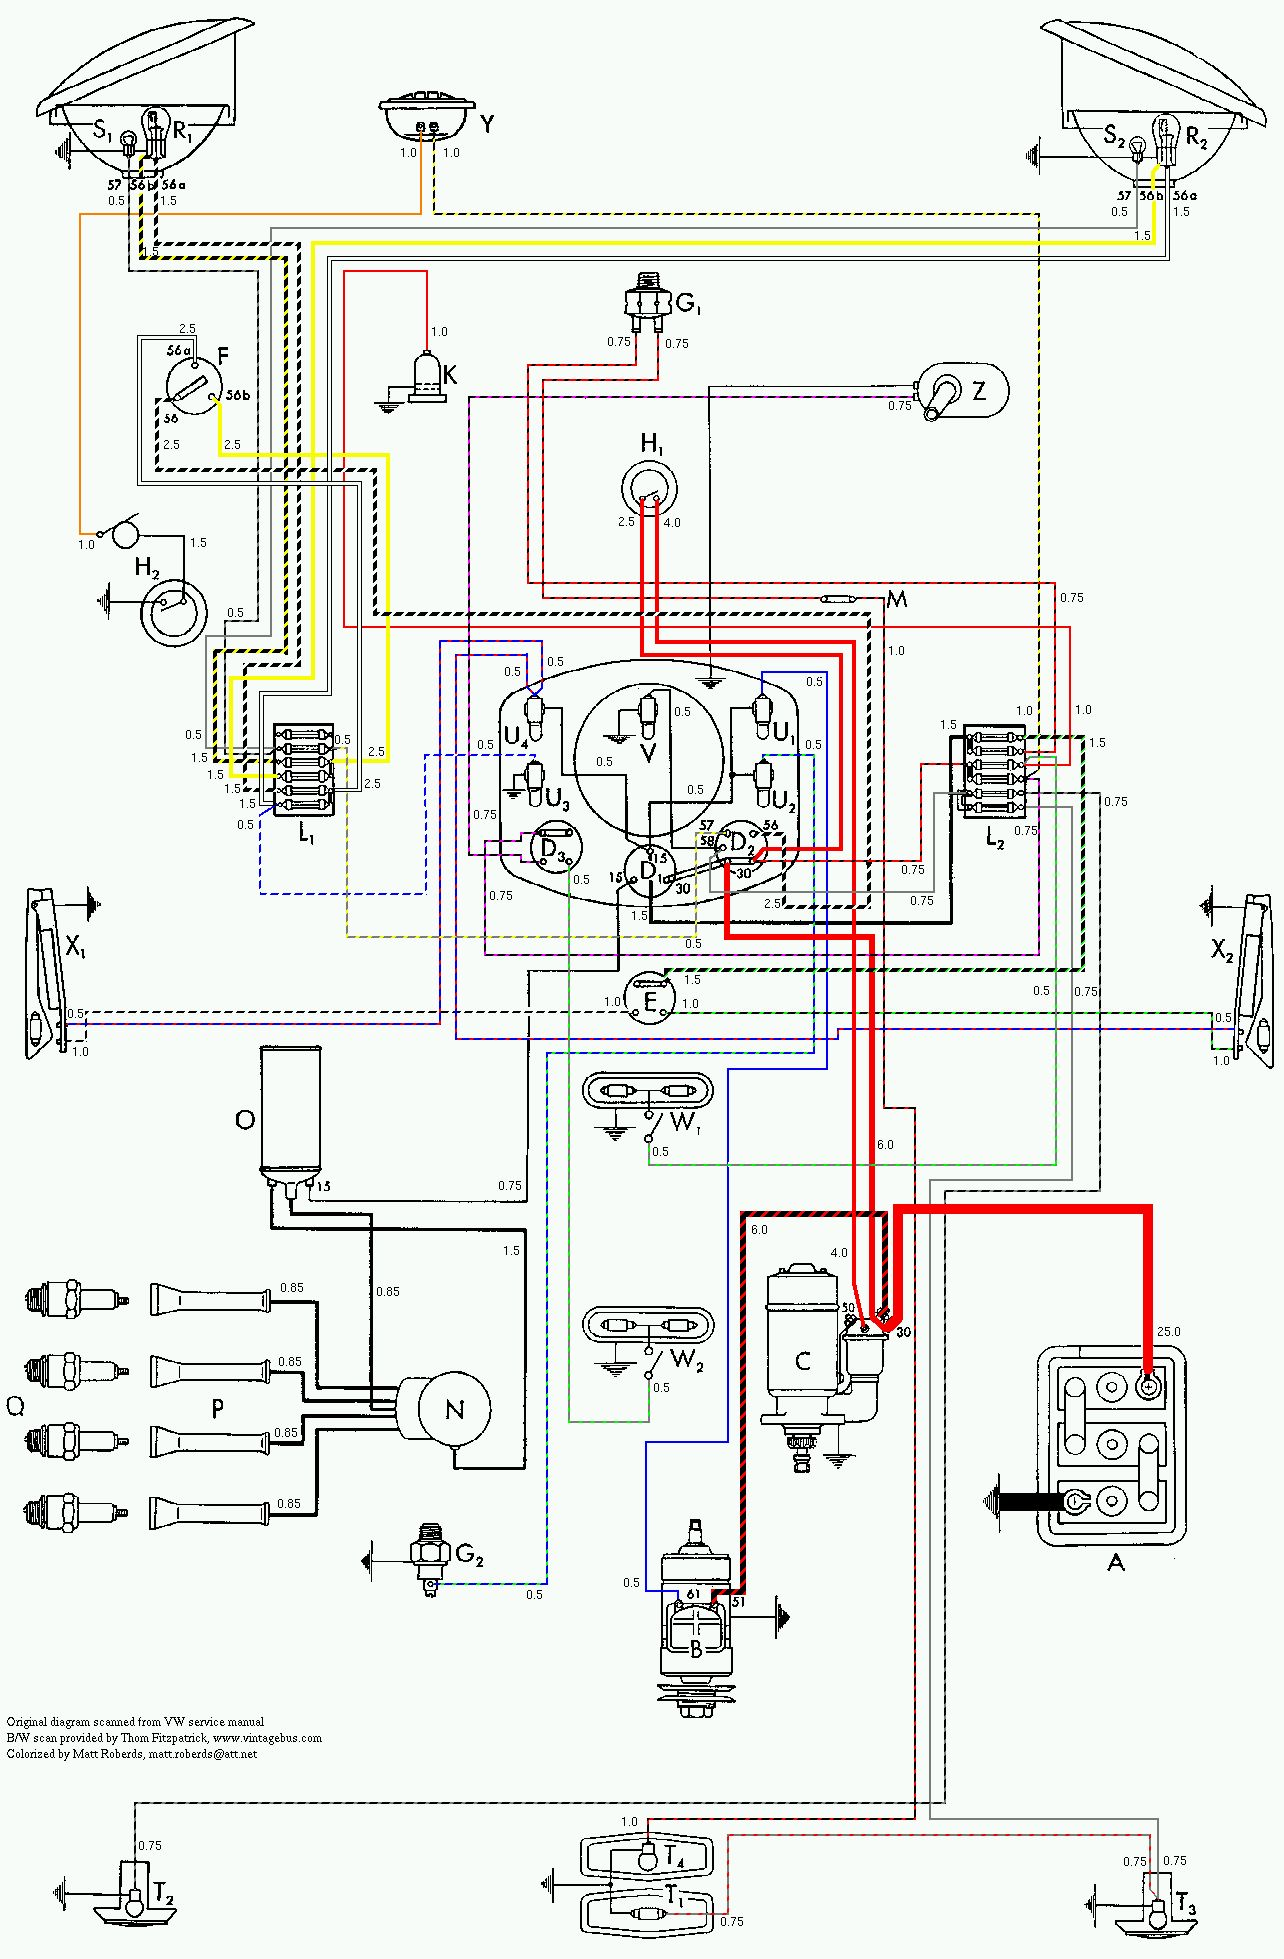 1968 Datsun Wiring Diagram Library Nova Free Picture Schematic Manual Harley Davidson Bus